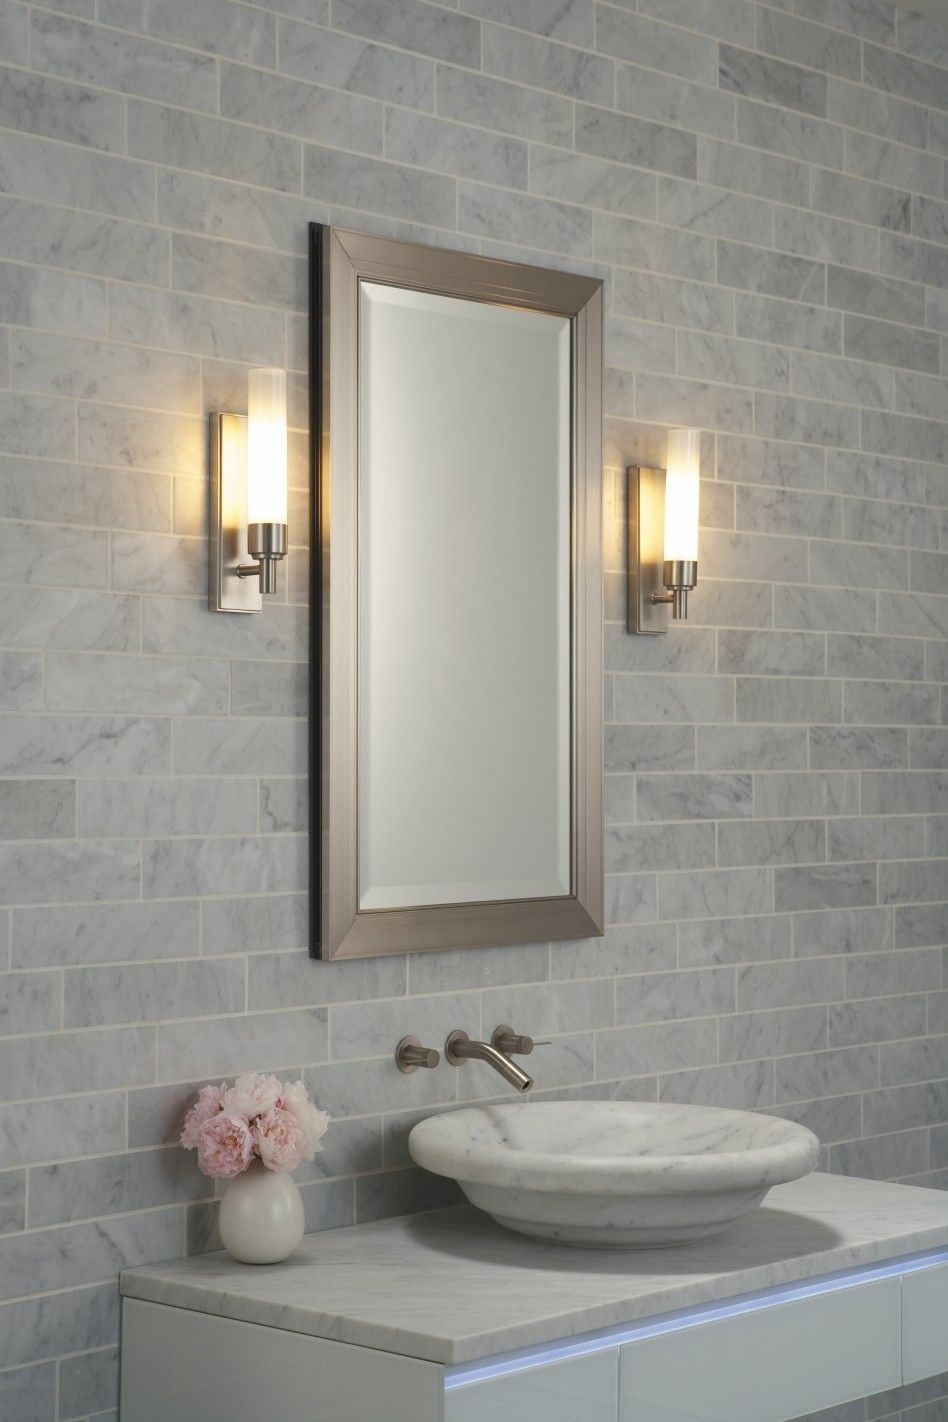 Bathroom Awesome Bathroom Fixtures Wall Lights Over White Mirror - Bathroom mirrors with lights attached for bathroom decor ideas